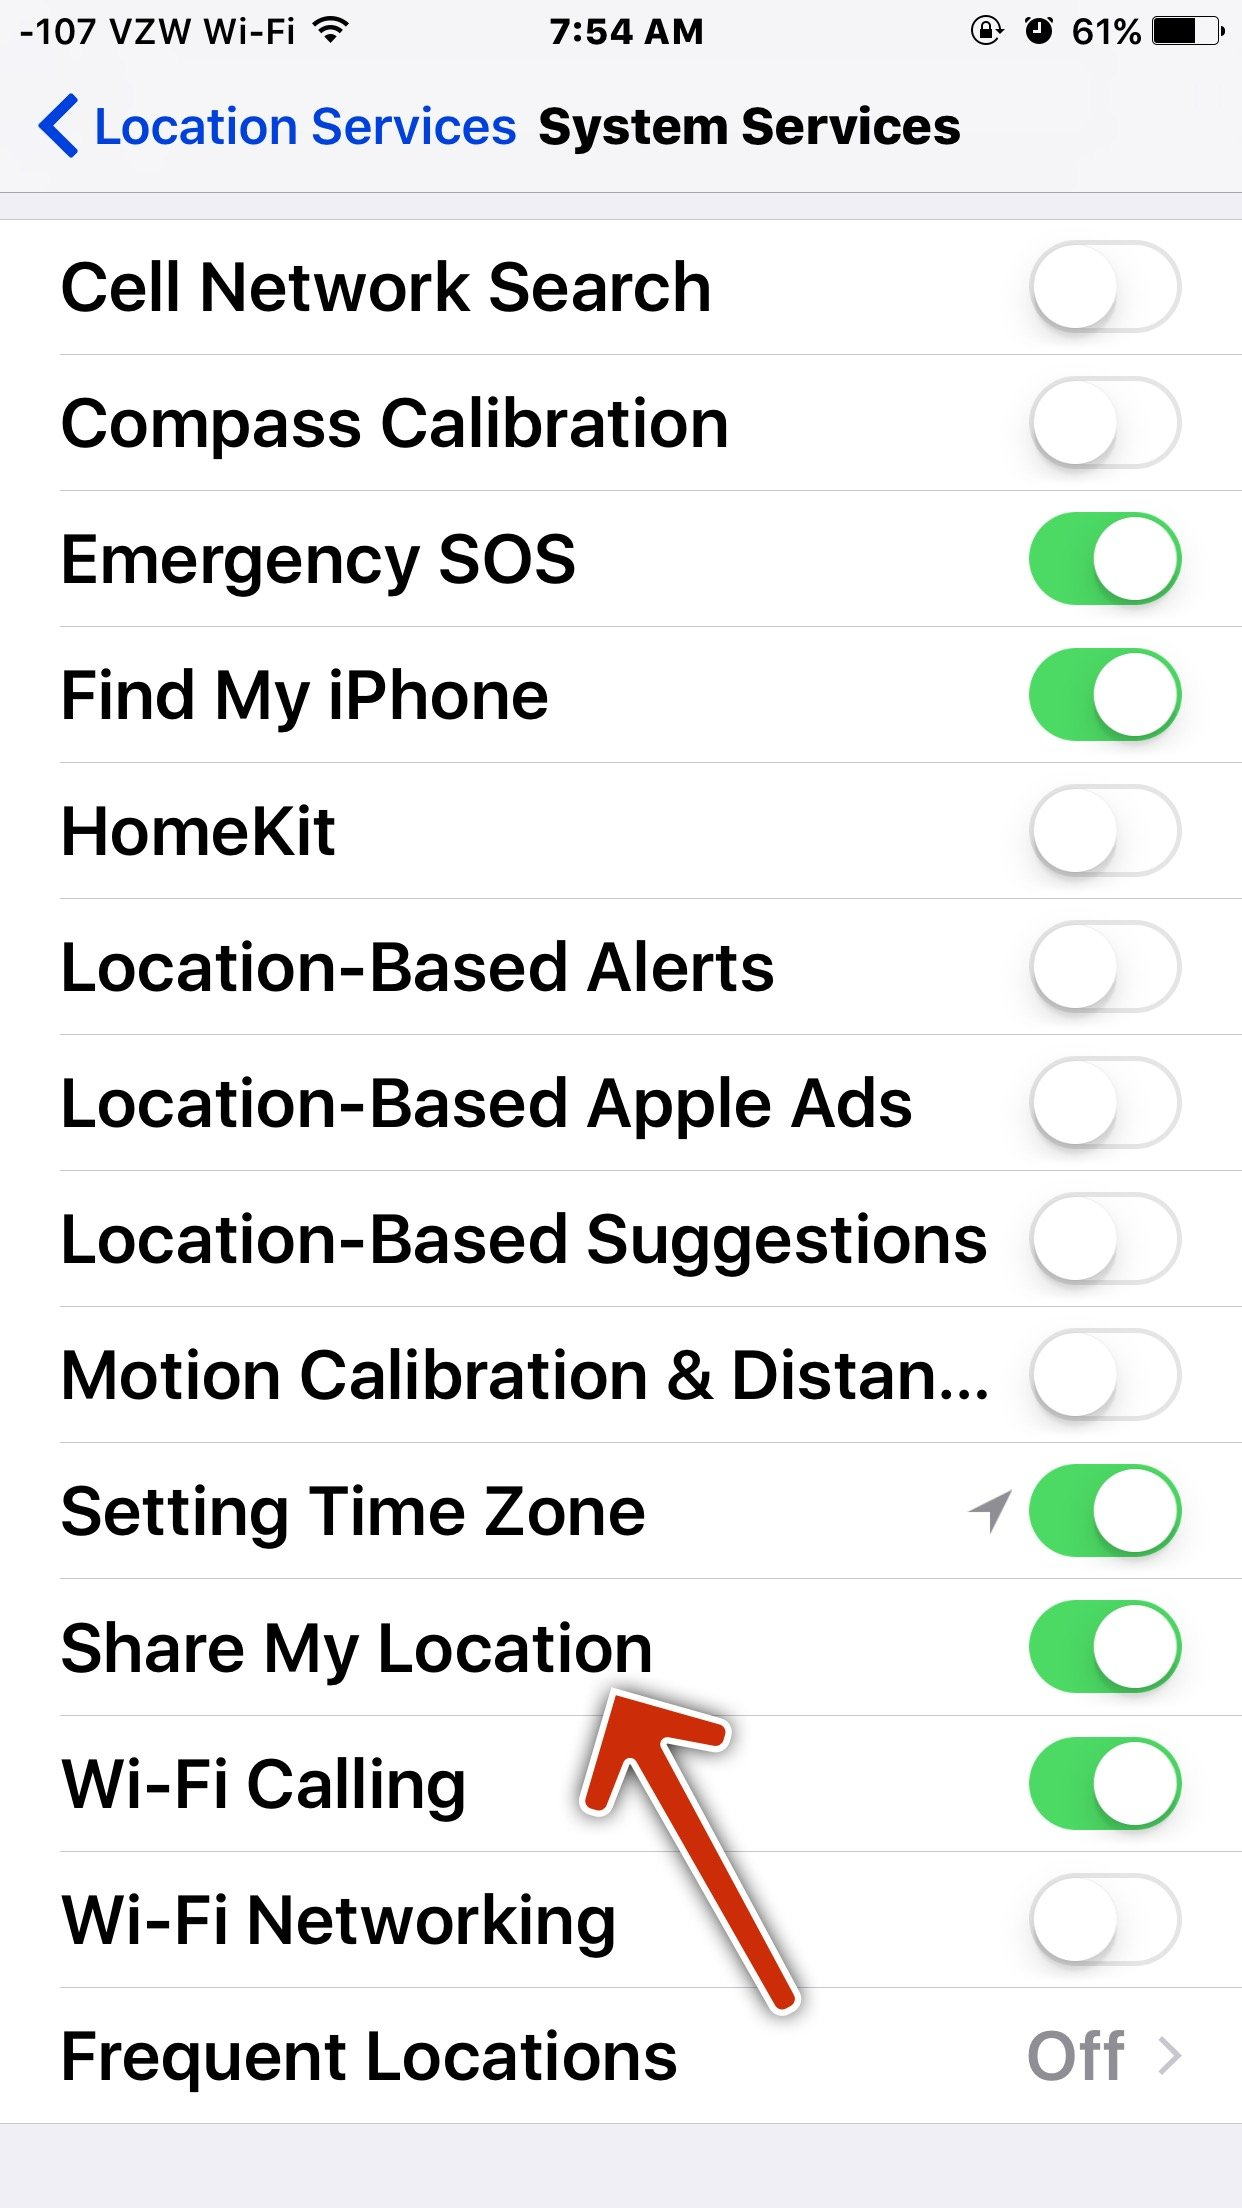 I turned my location on indefinitely for my wife and it doesn't show